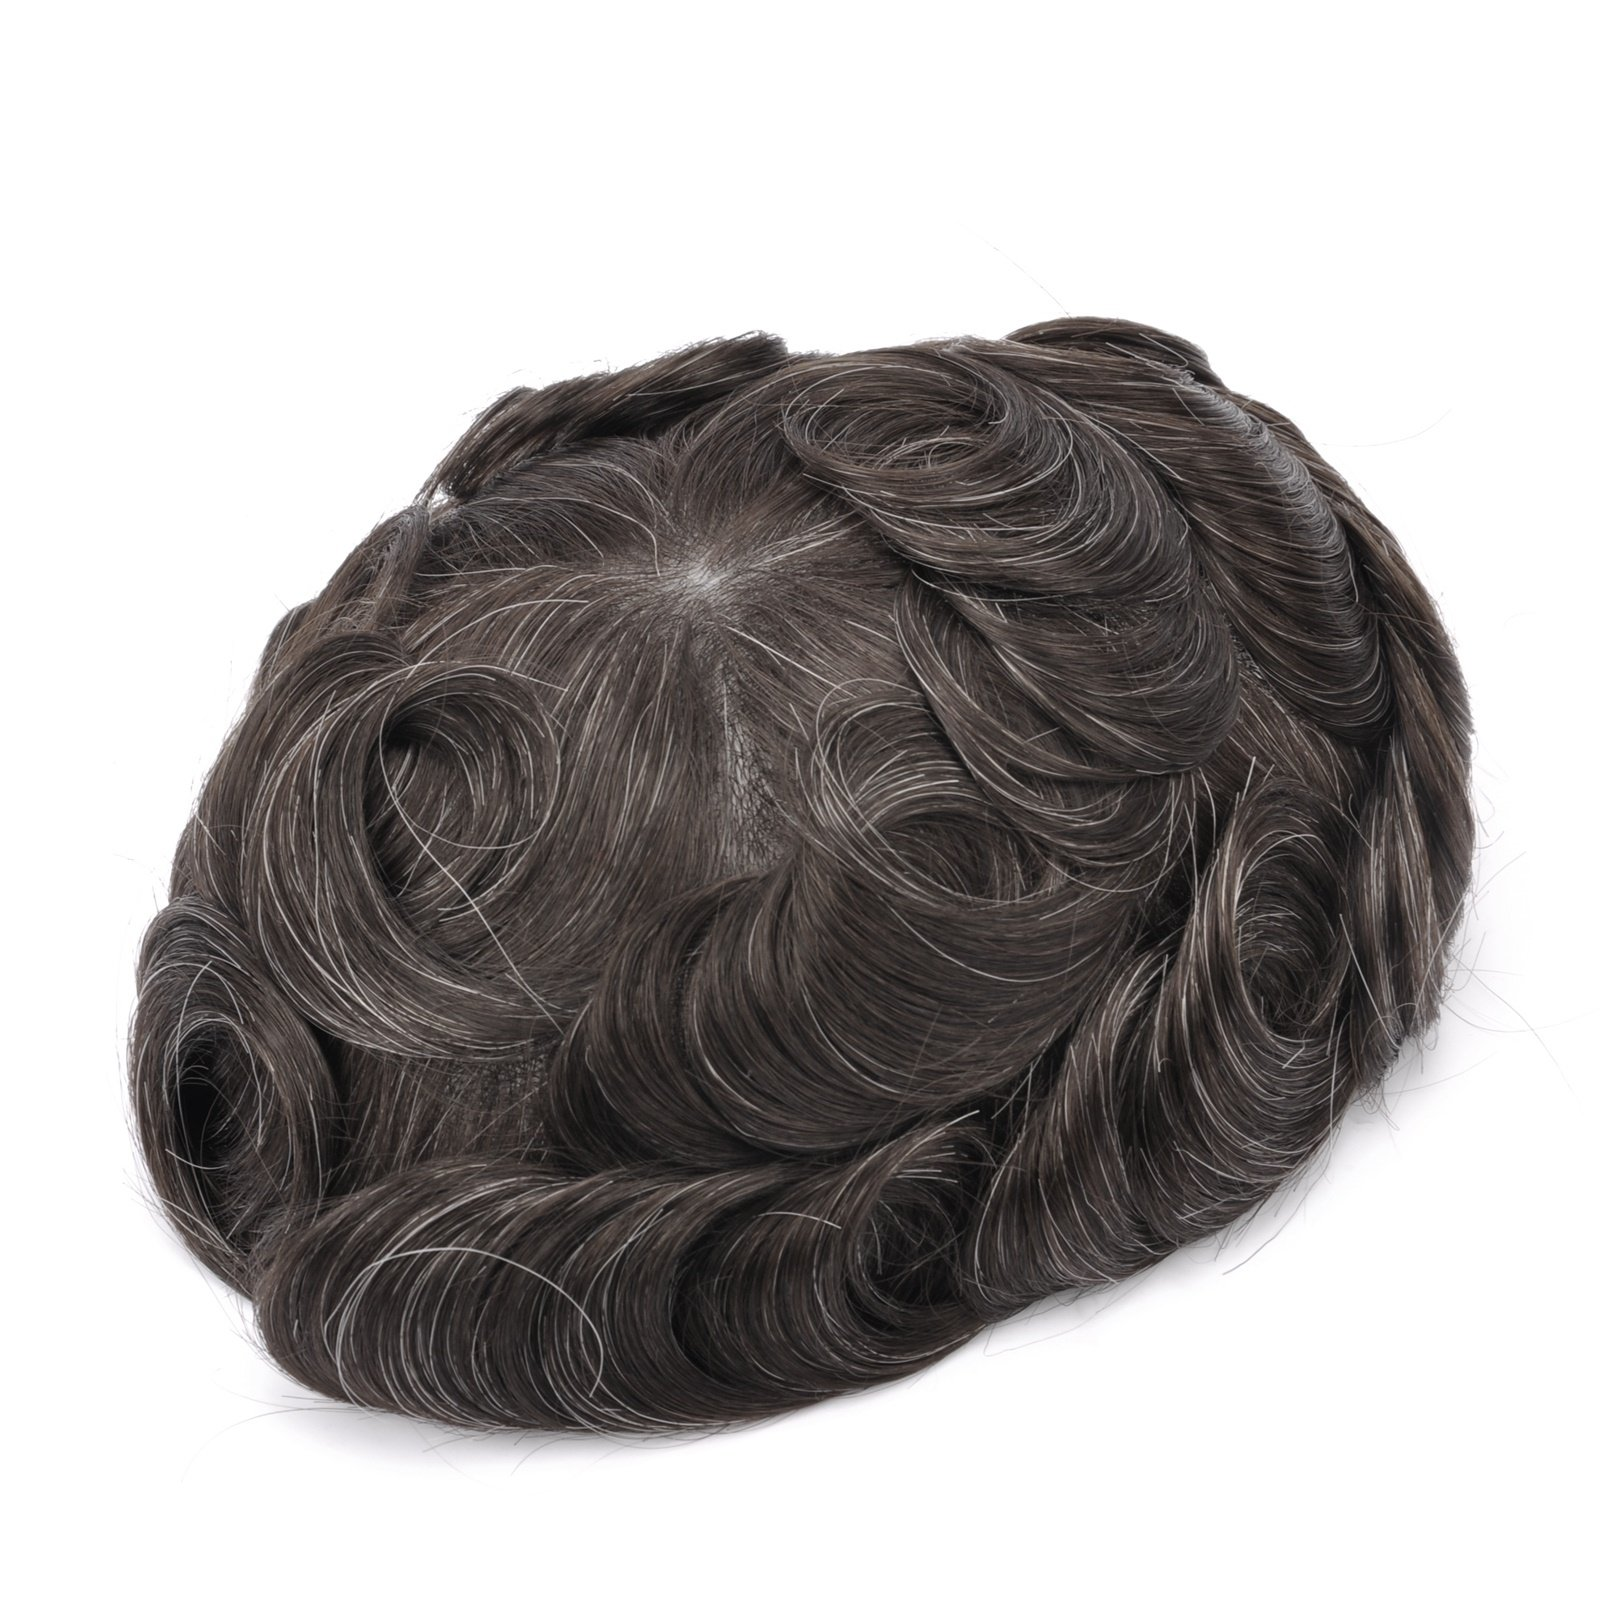 GEX 56 Colors Men's HairPiece Toupee Human Hair Replacement Systems French Lace Base Slight Wave Medium Density Vivid Men's Wig French Lace(310)